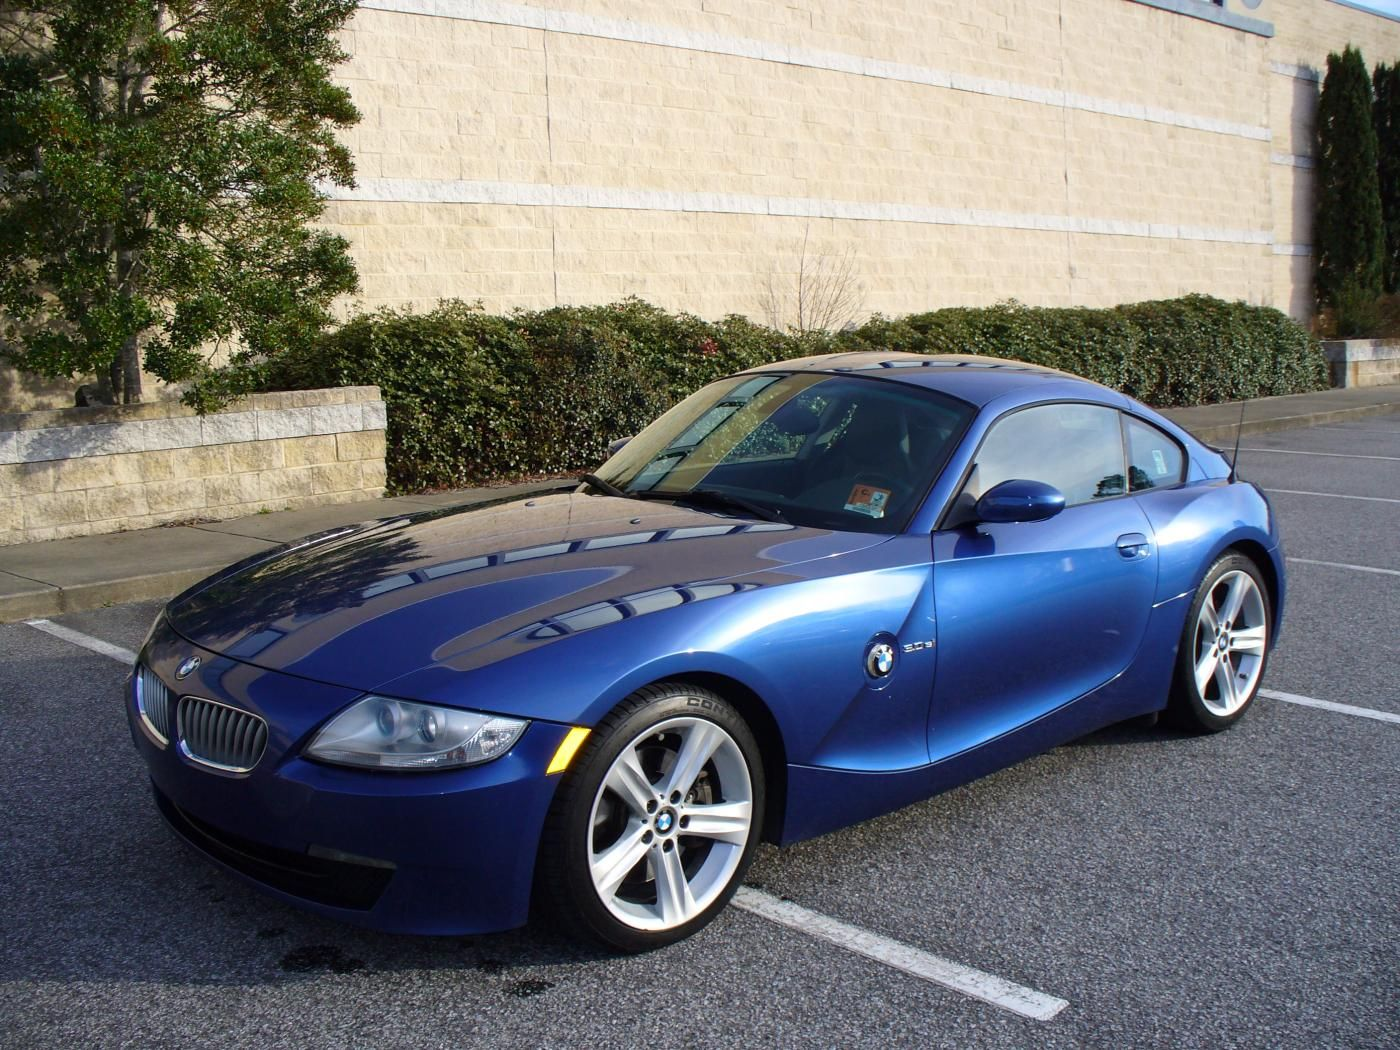 fs 2007 bmw z4 coupe montego blue bmw pinterest bmw. Black Bedroom Furniture Sets. Home Design Ideas